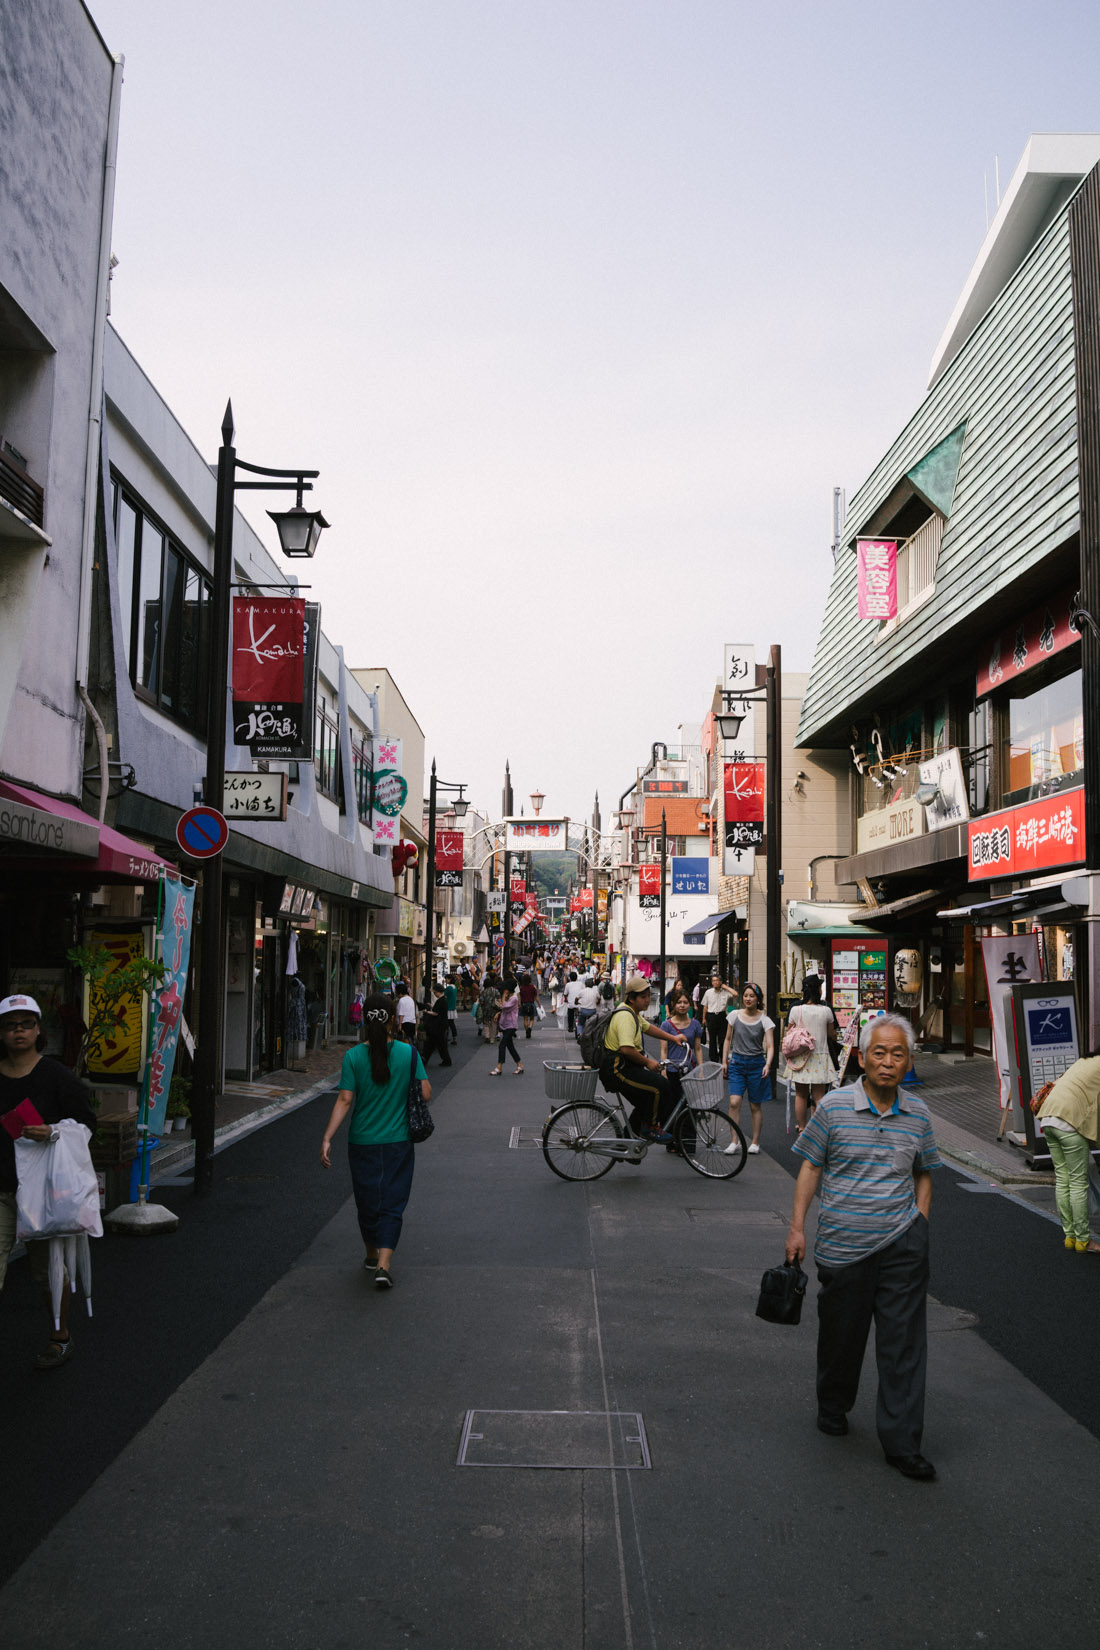 Shopping street in Kamakura, fantastic vibe!